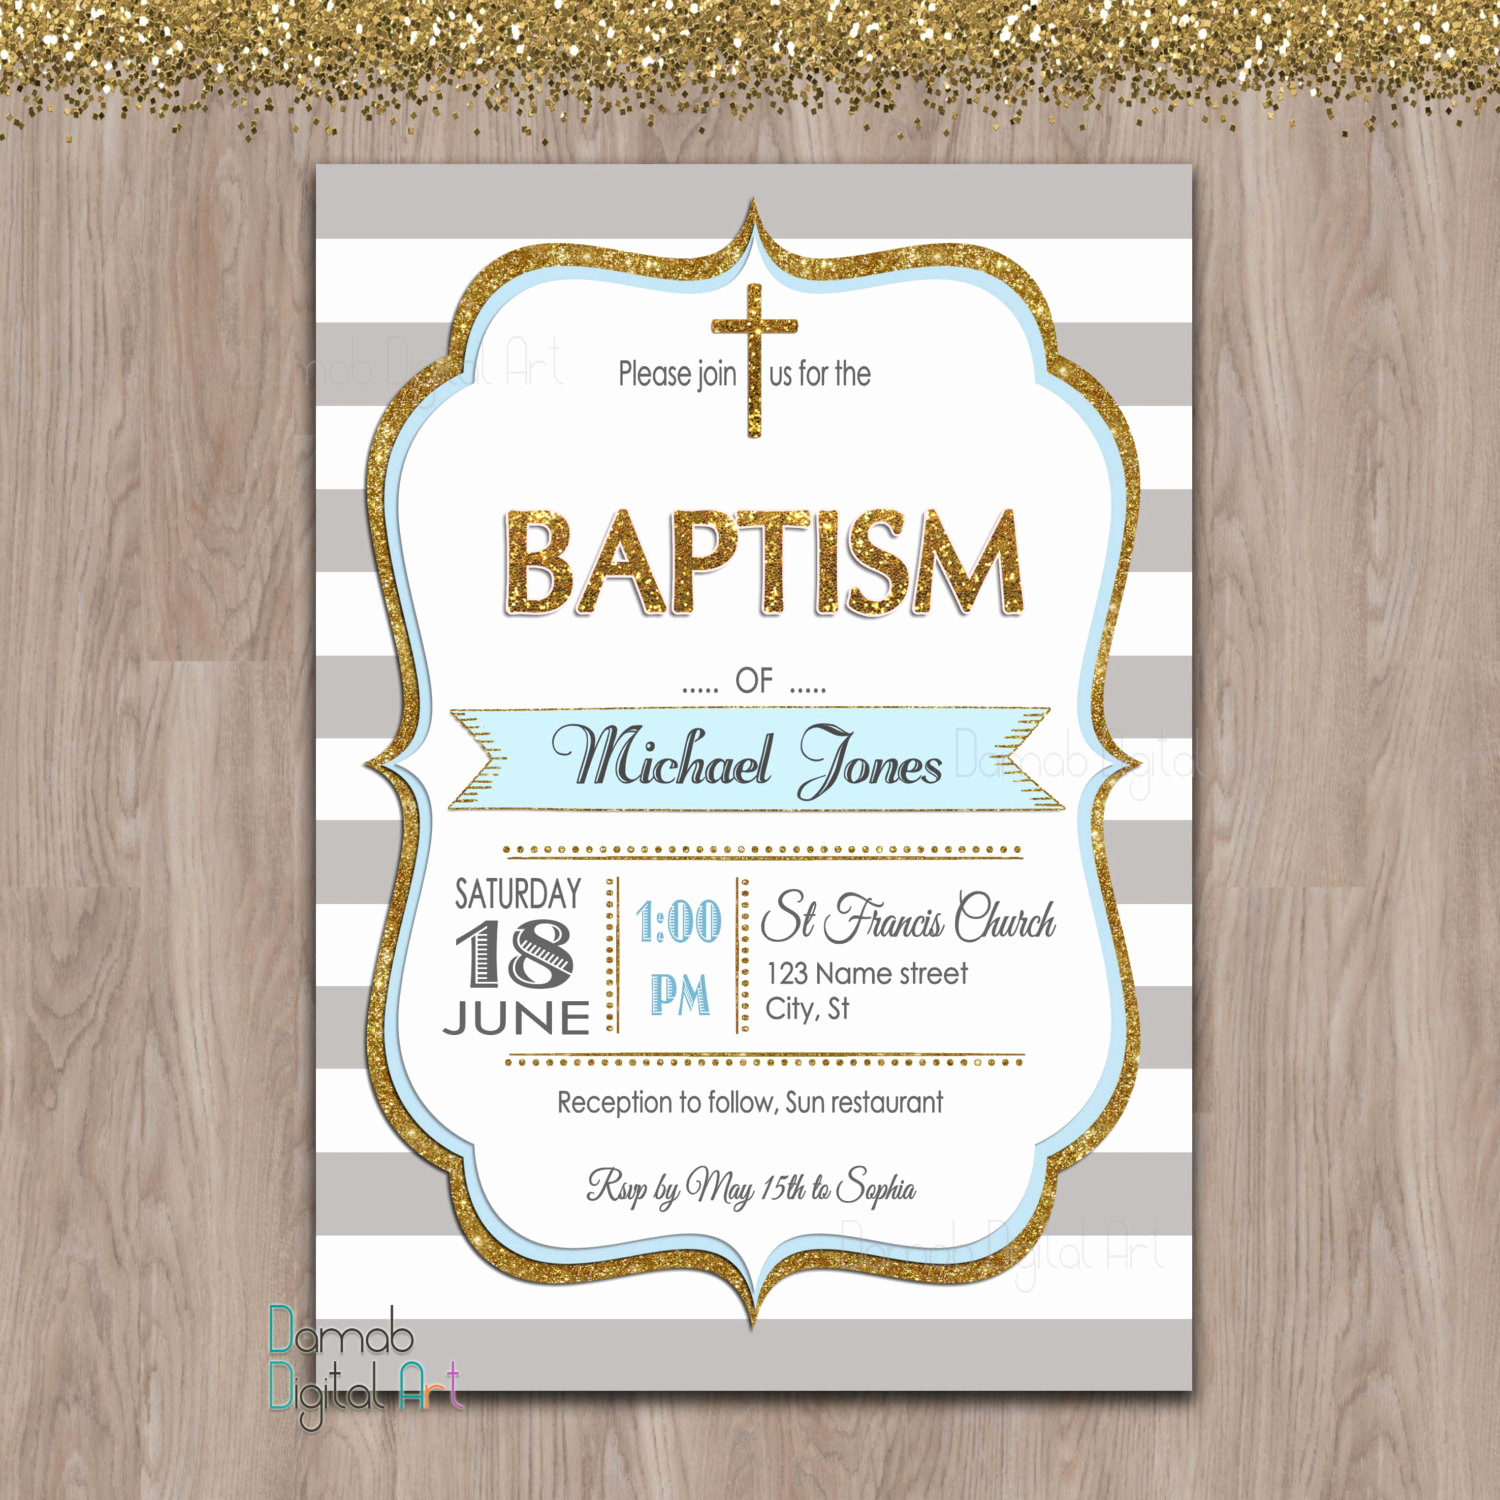 Christening Invitation for Baby Boy Unique Baptism Invitation Boy Baptism Invitation Printable